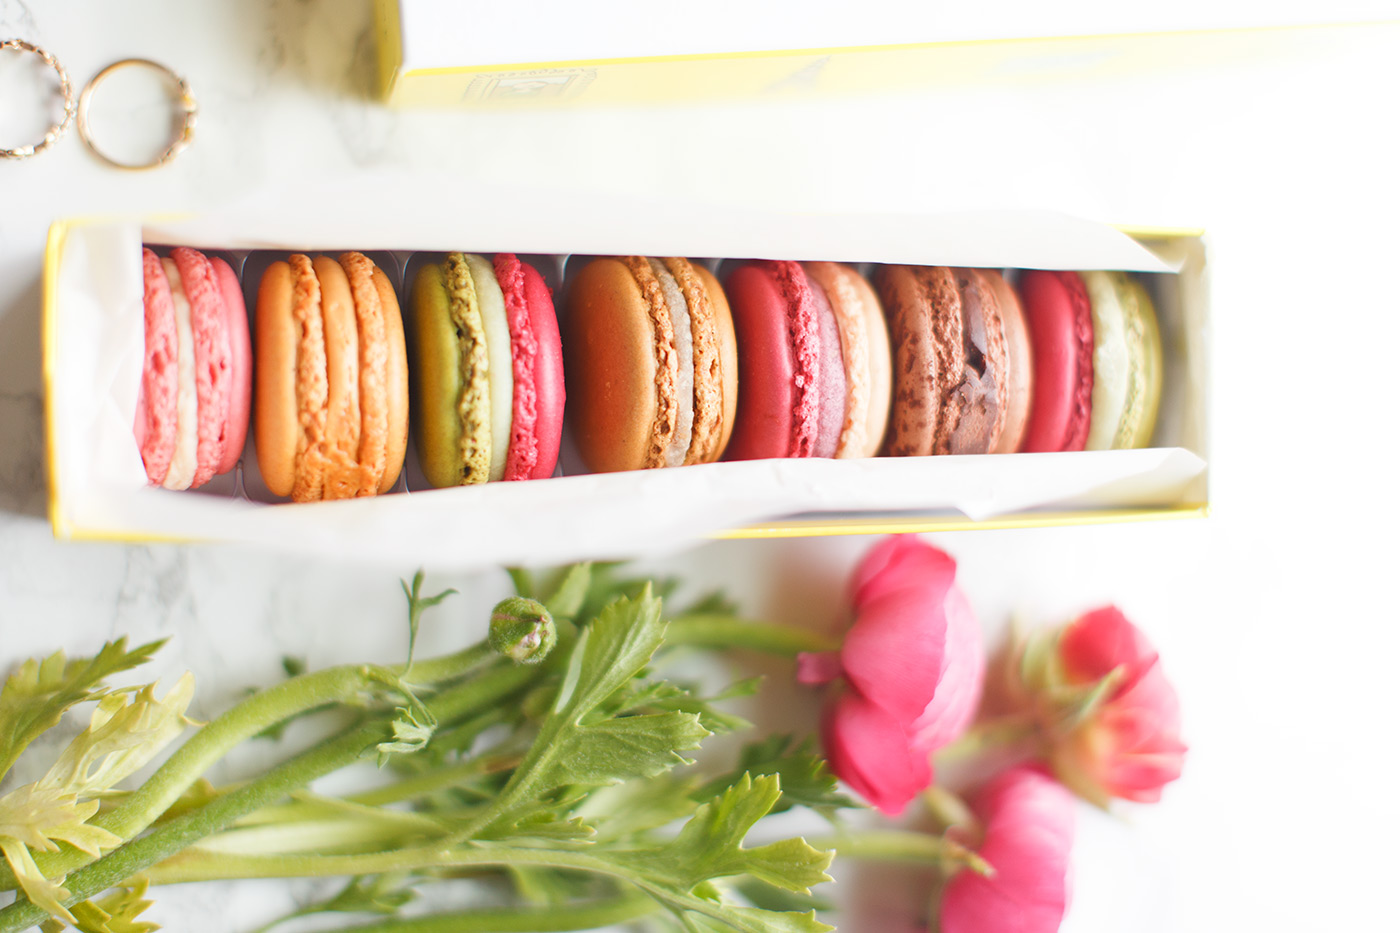 Pierre Herme Macarons for National Dessert day by Armenyl.com